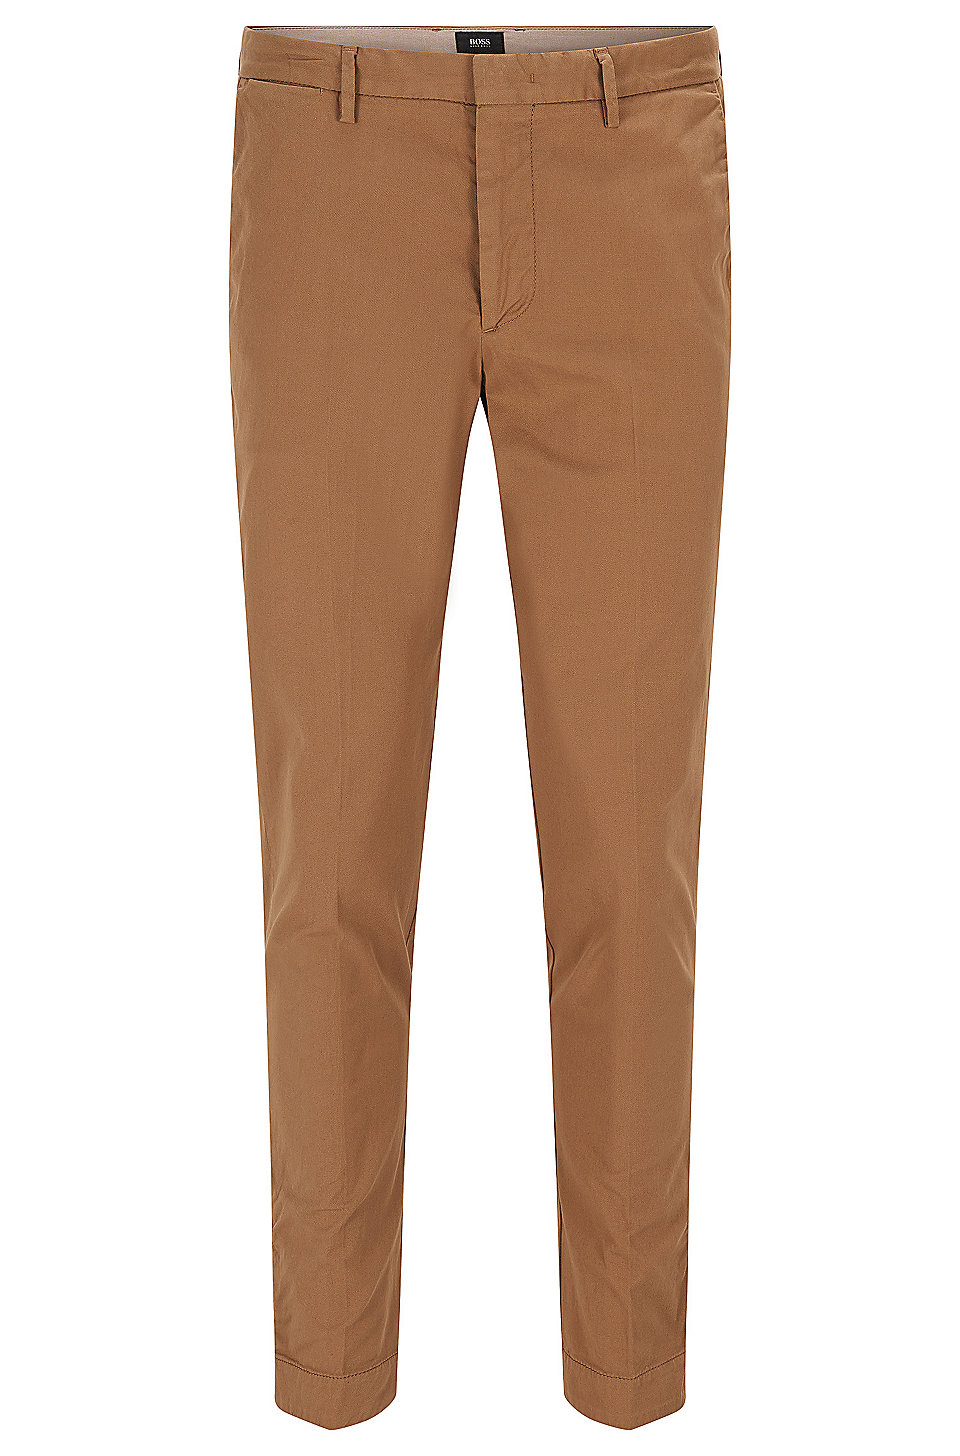 Boss orange chino hose slim fit